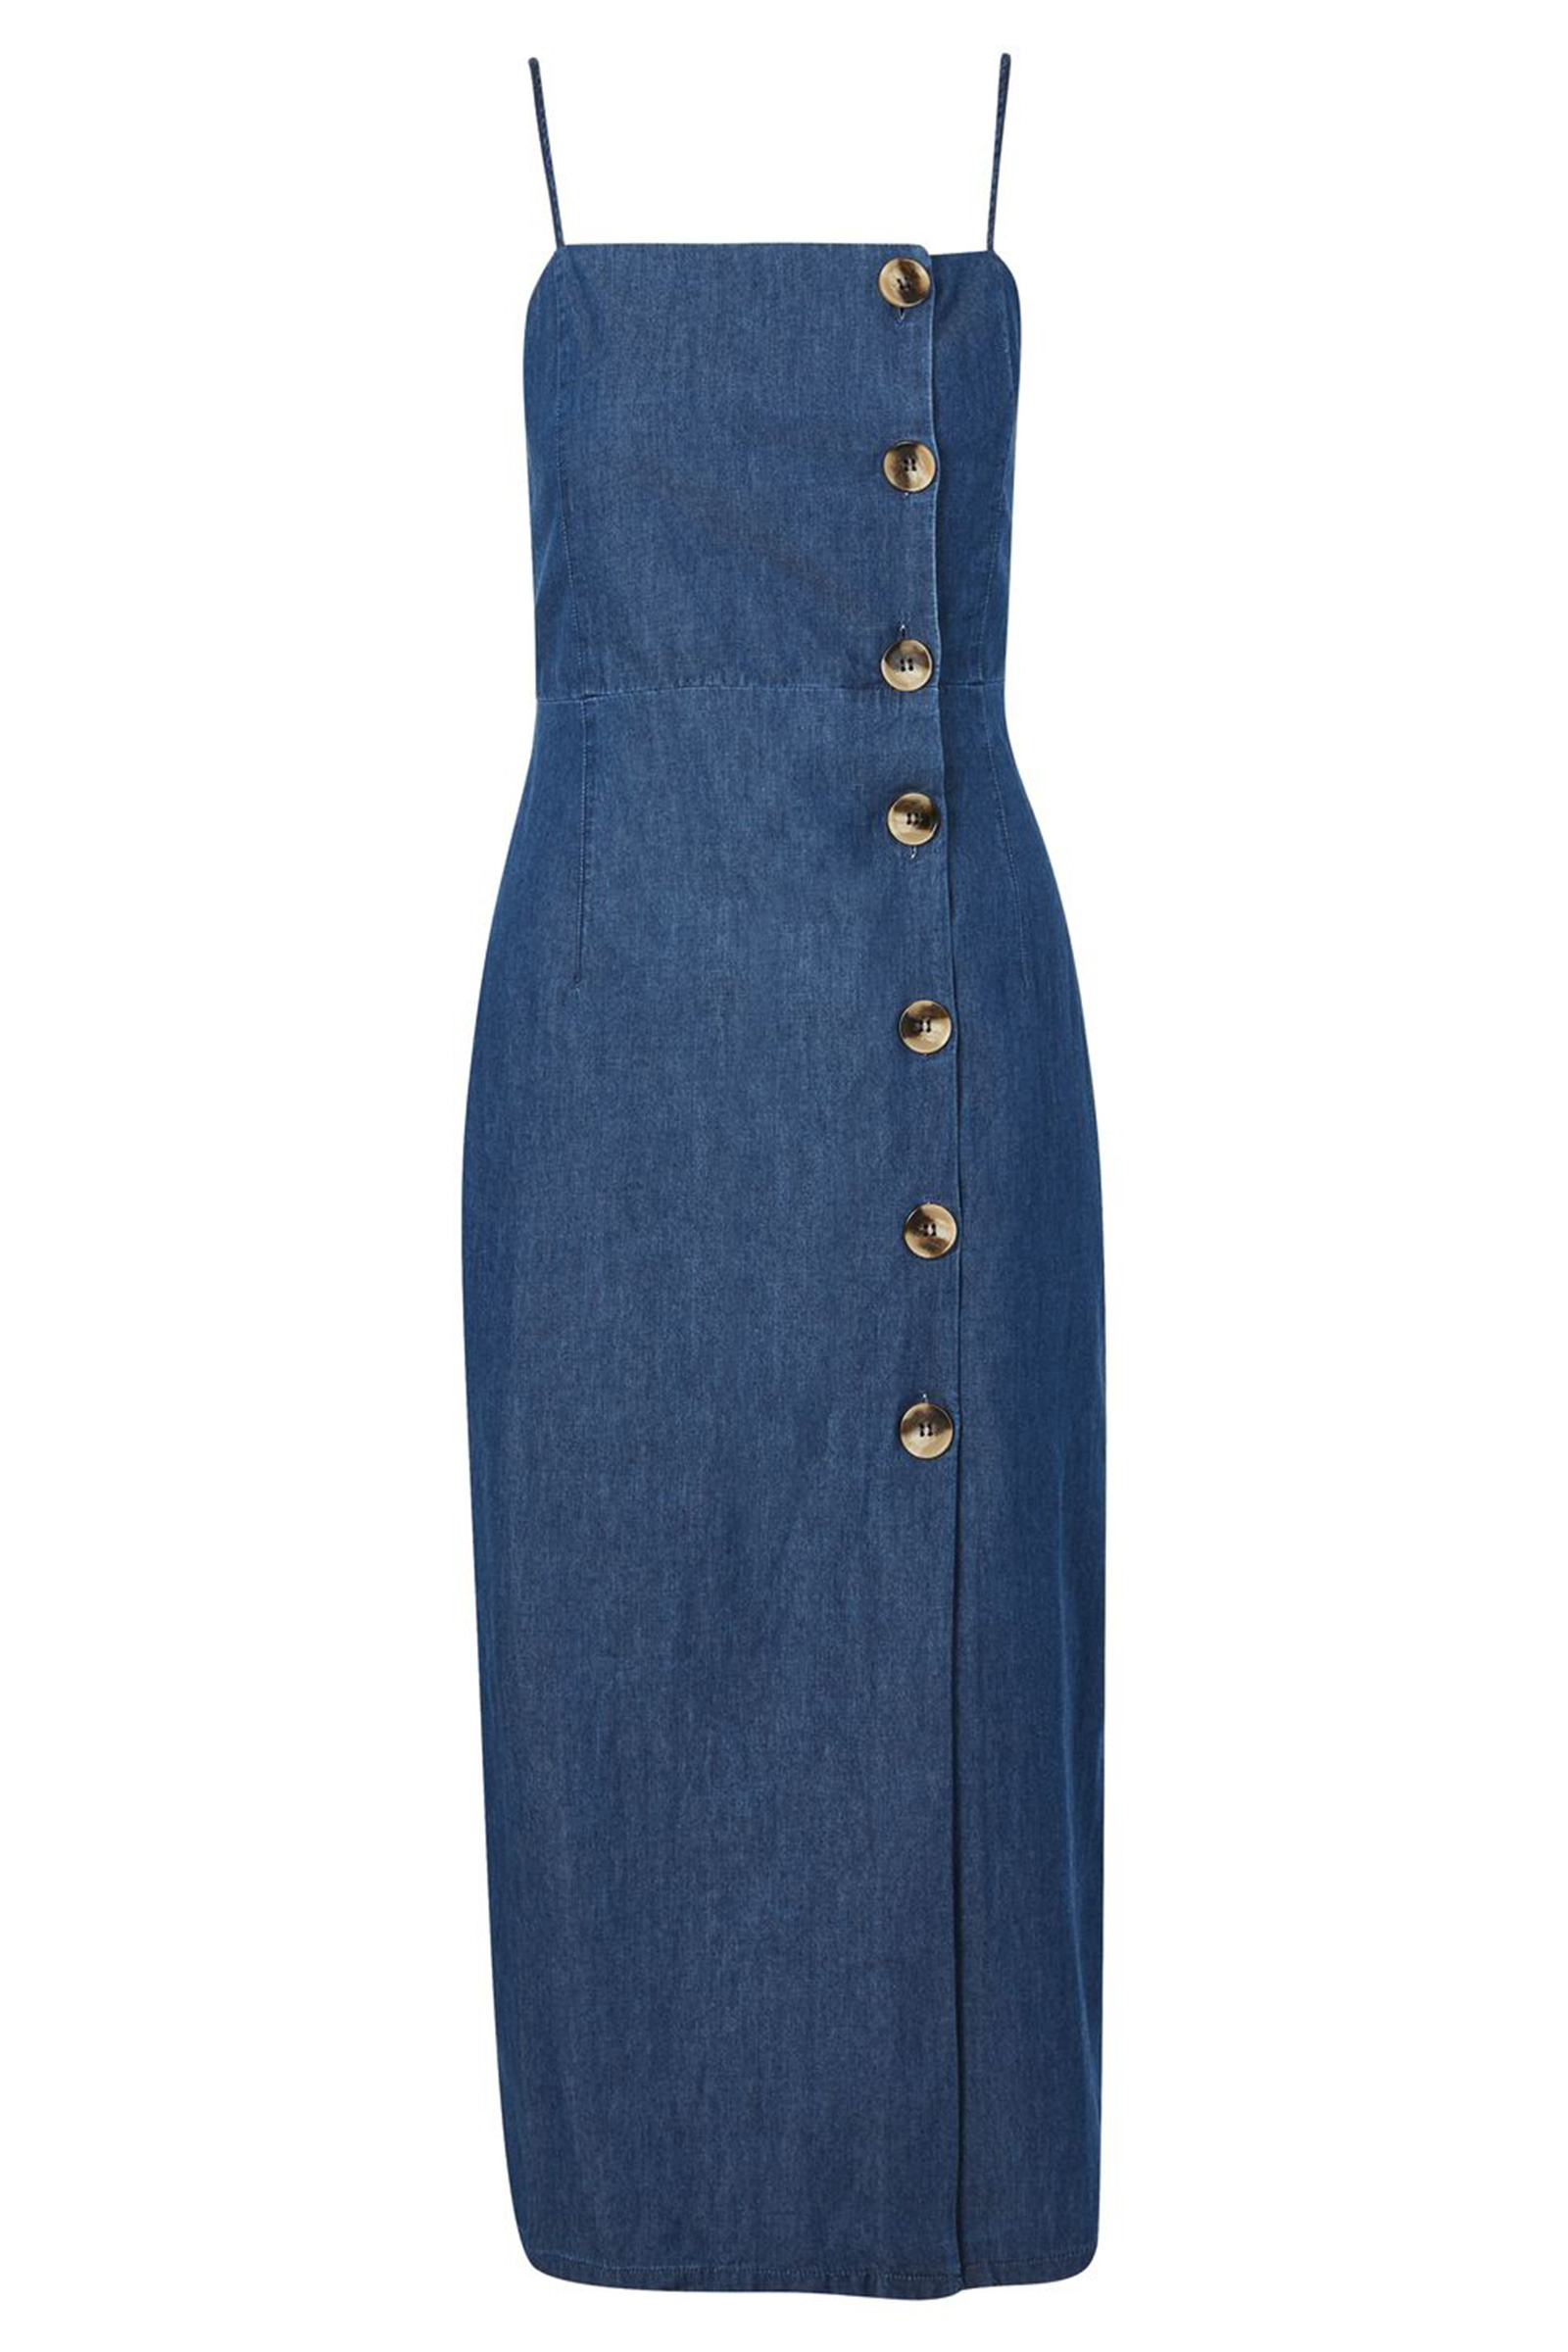 Buy Topshop Moto Horn Button Denim Midi Dress Online